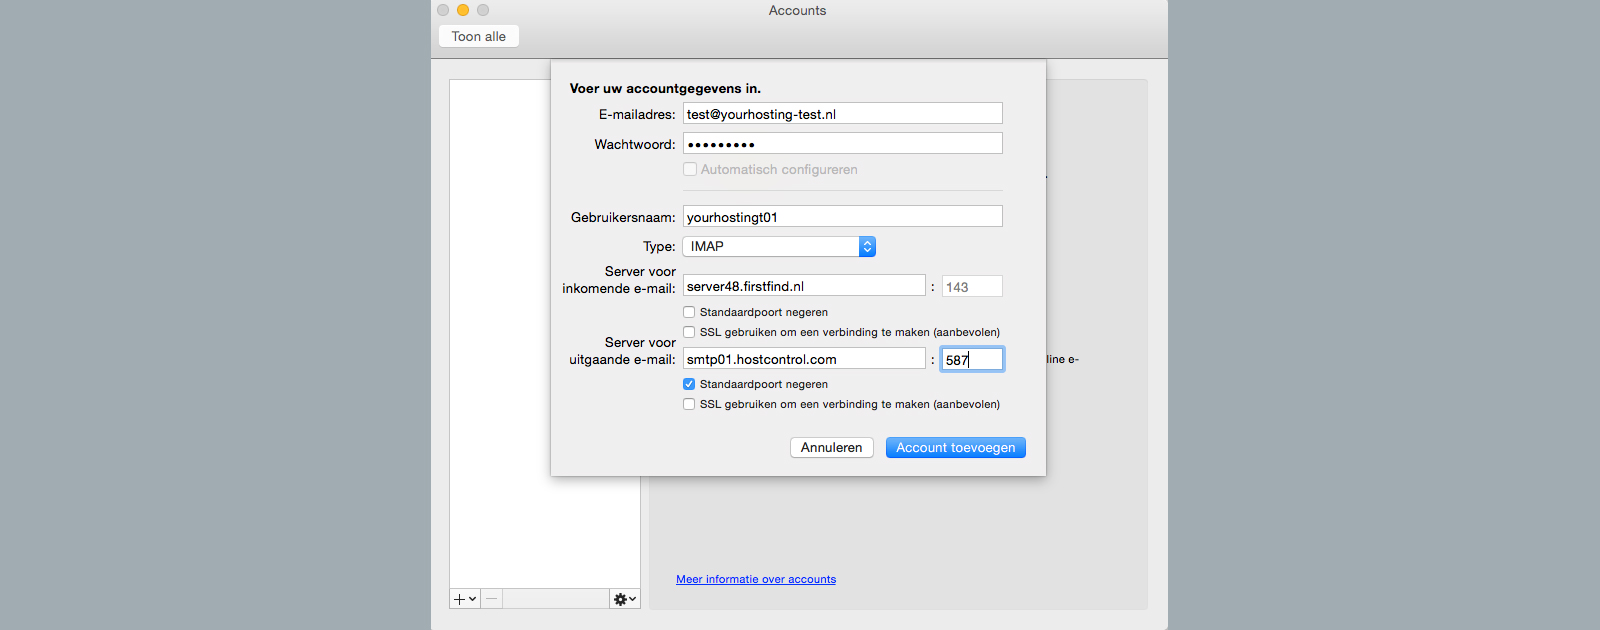 outlook 2011 for mac server uitgaande e-mail accountgegevens